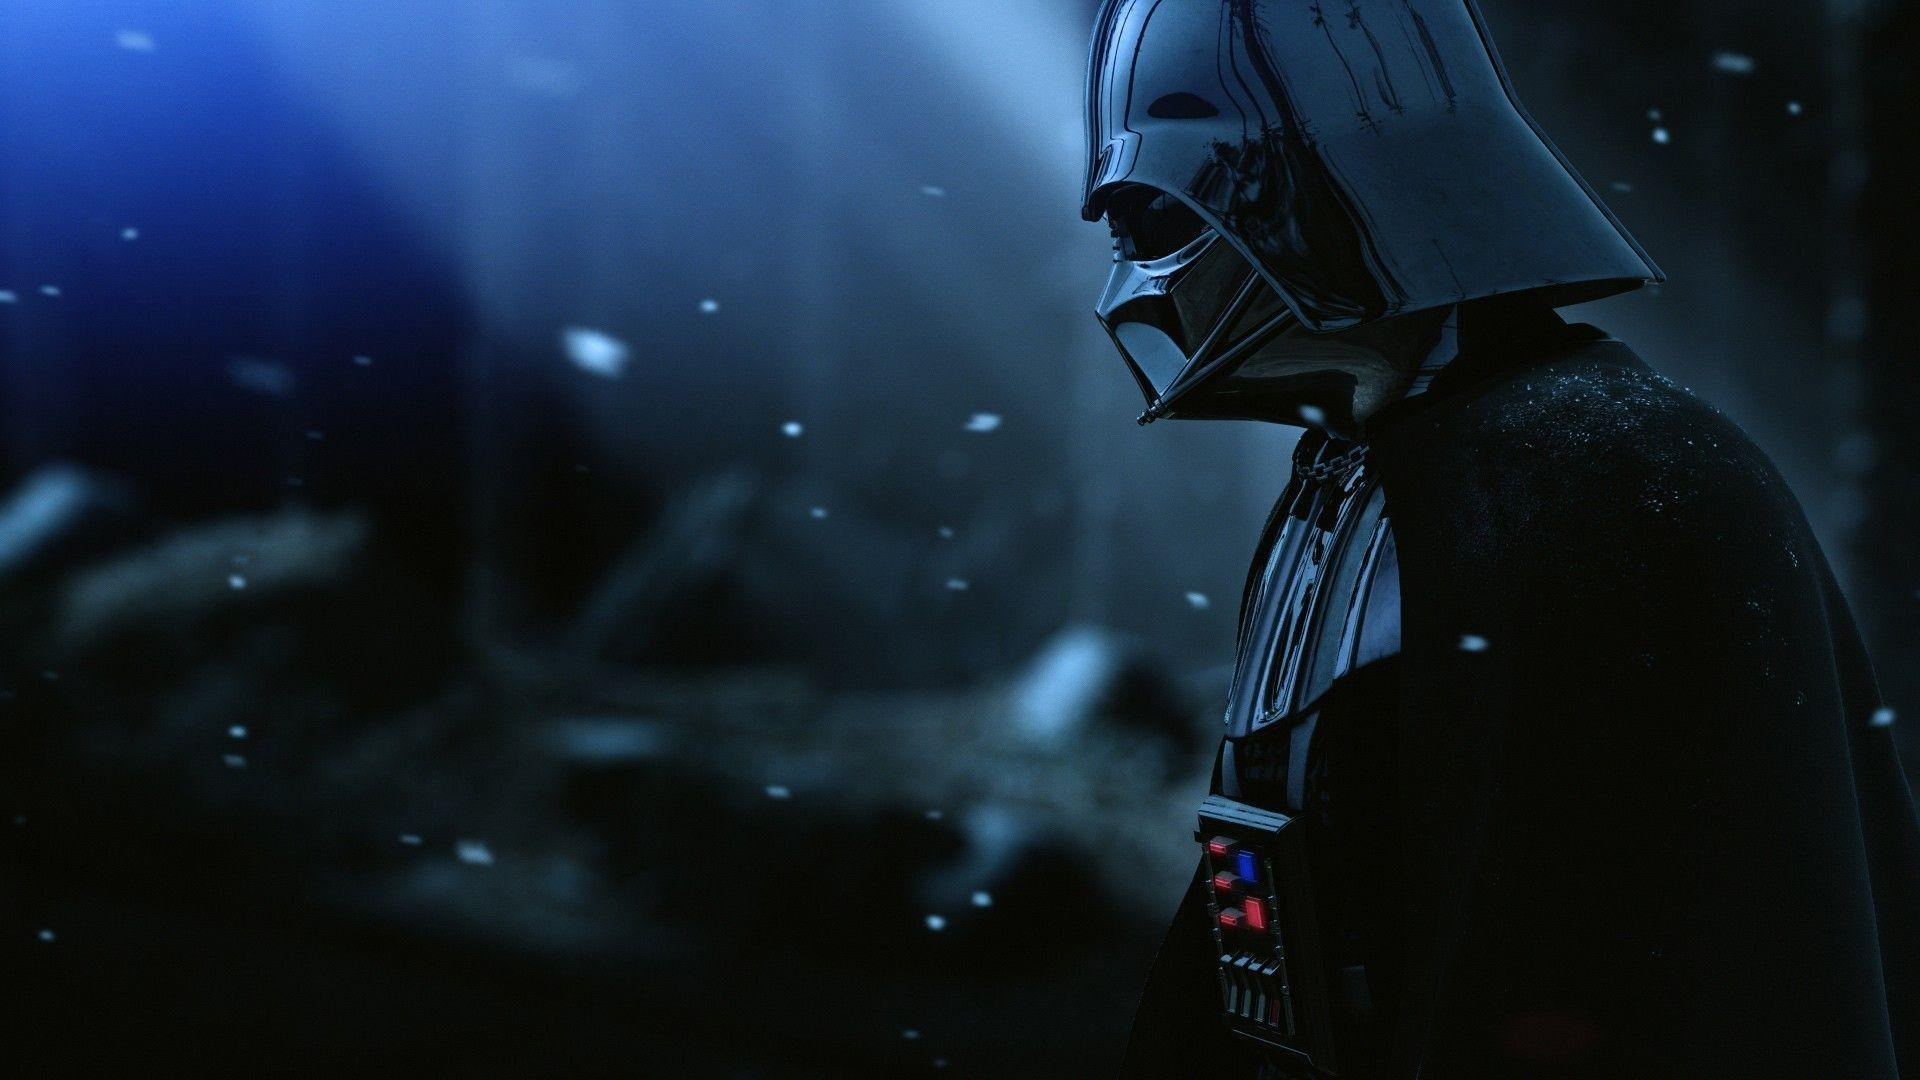 10 New Star Wars Background 1920X1080 FULL HD 1920×1080 For PC Background